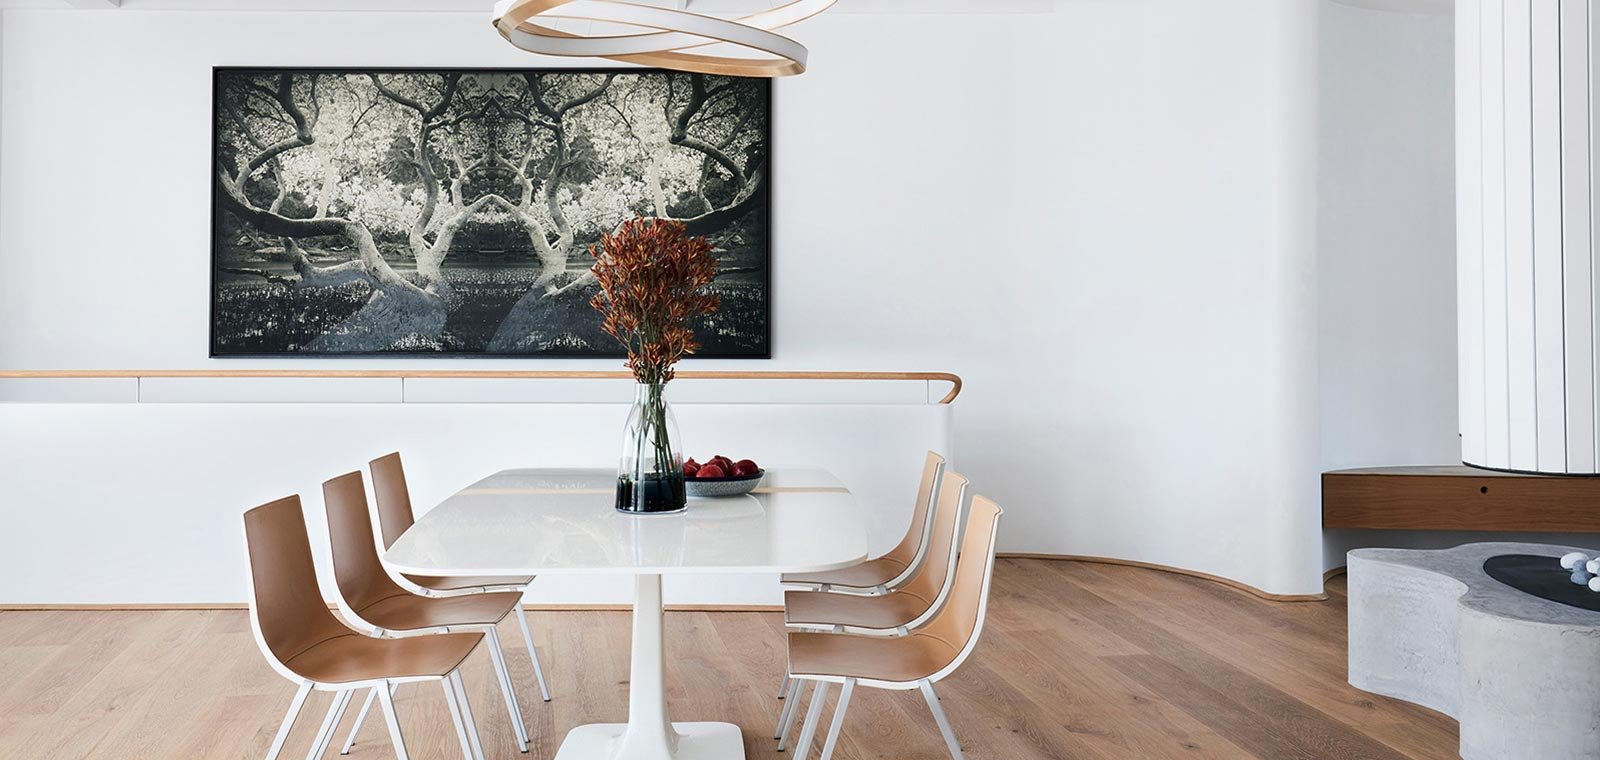 Tama's Tee Home by Luigi Rosselli Architects in Sydney, Australia - contemporary dining room design